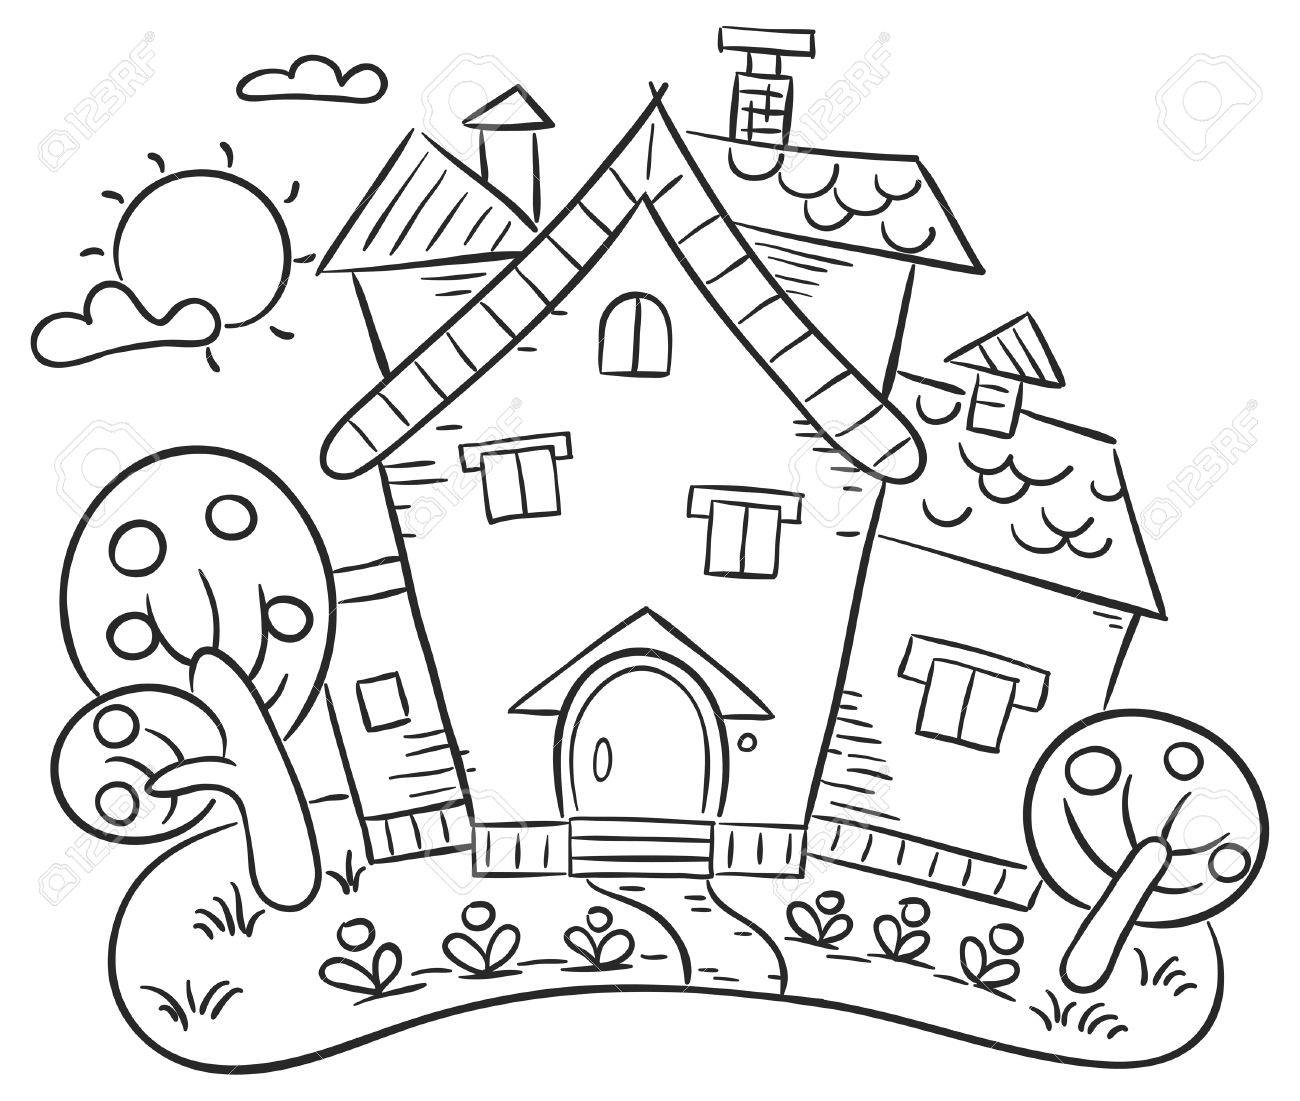 Stylized Countryside House With A Garden Outline Royalty Free Cliparts Vectors And Stock Illustration Image 34050496